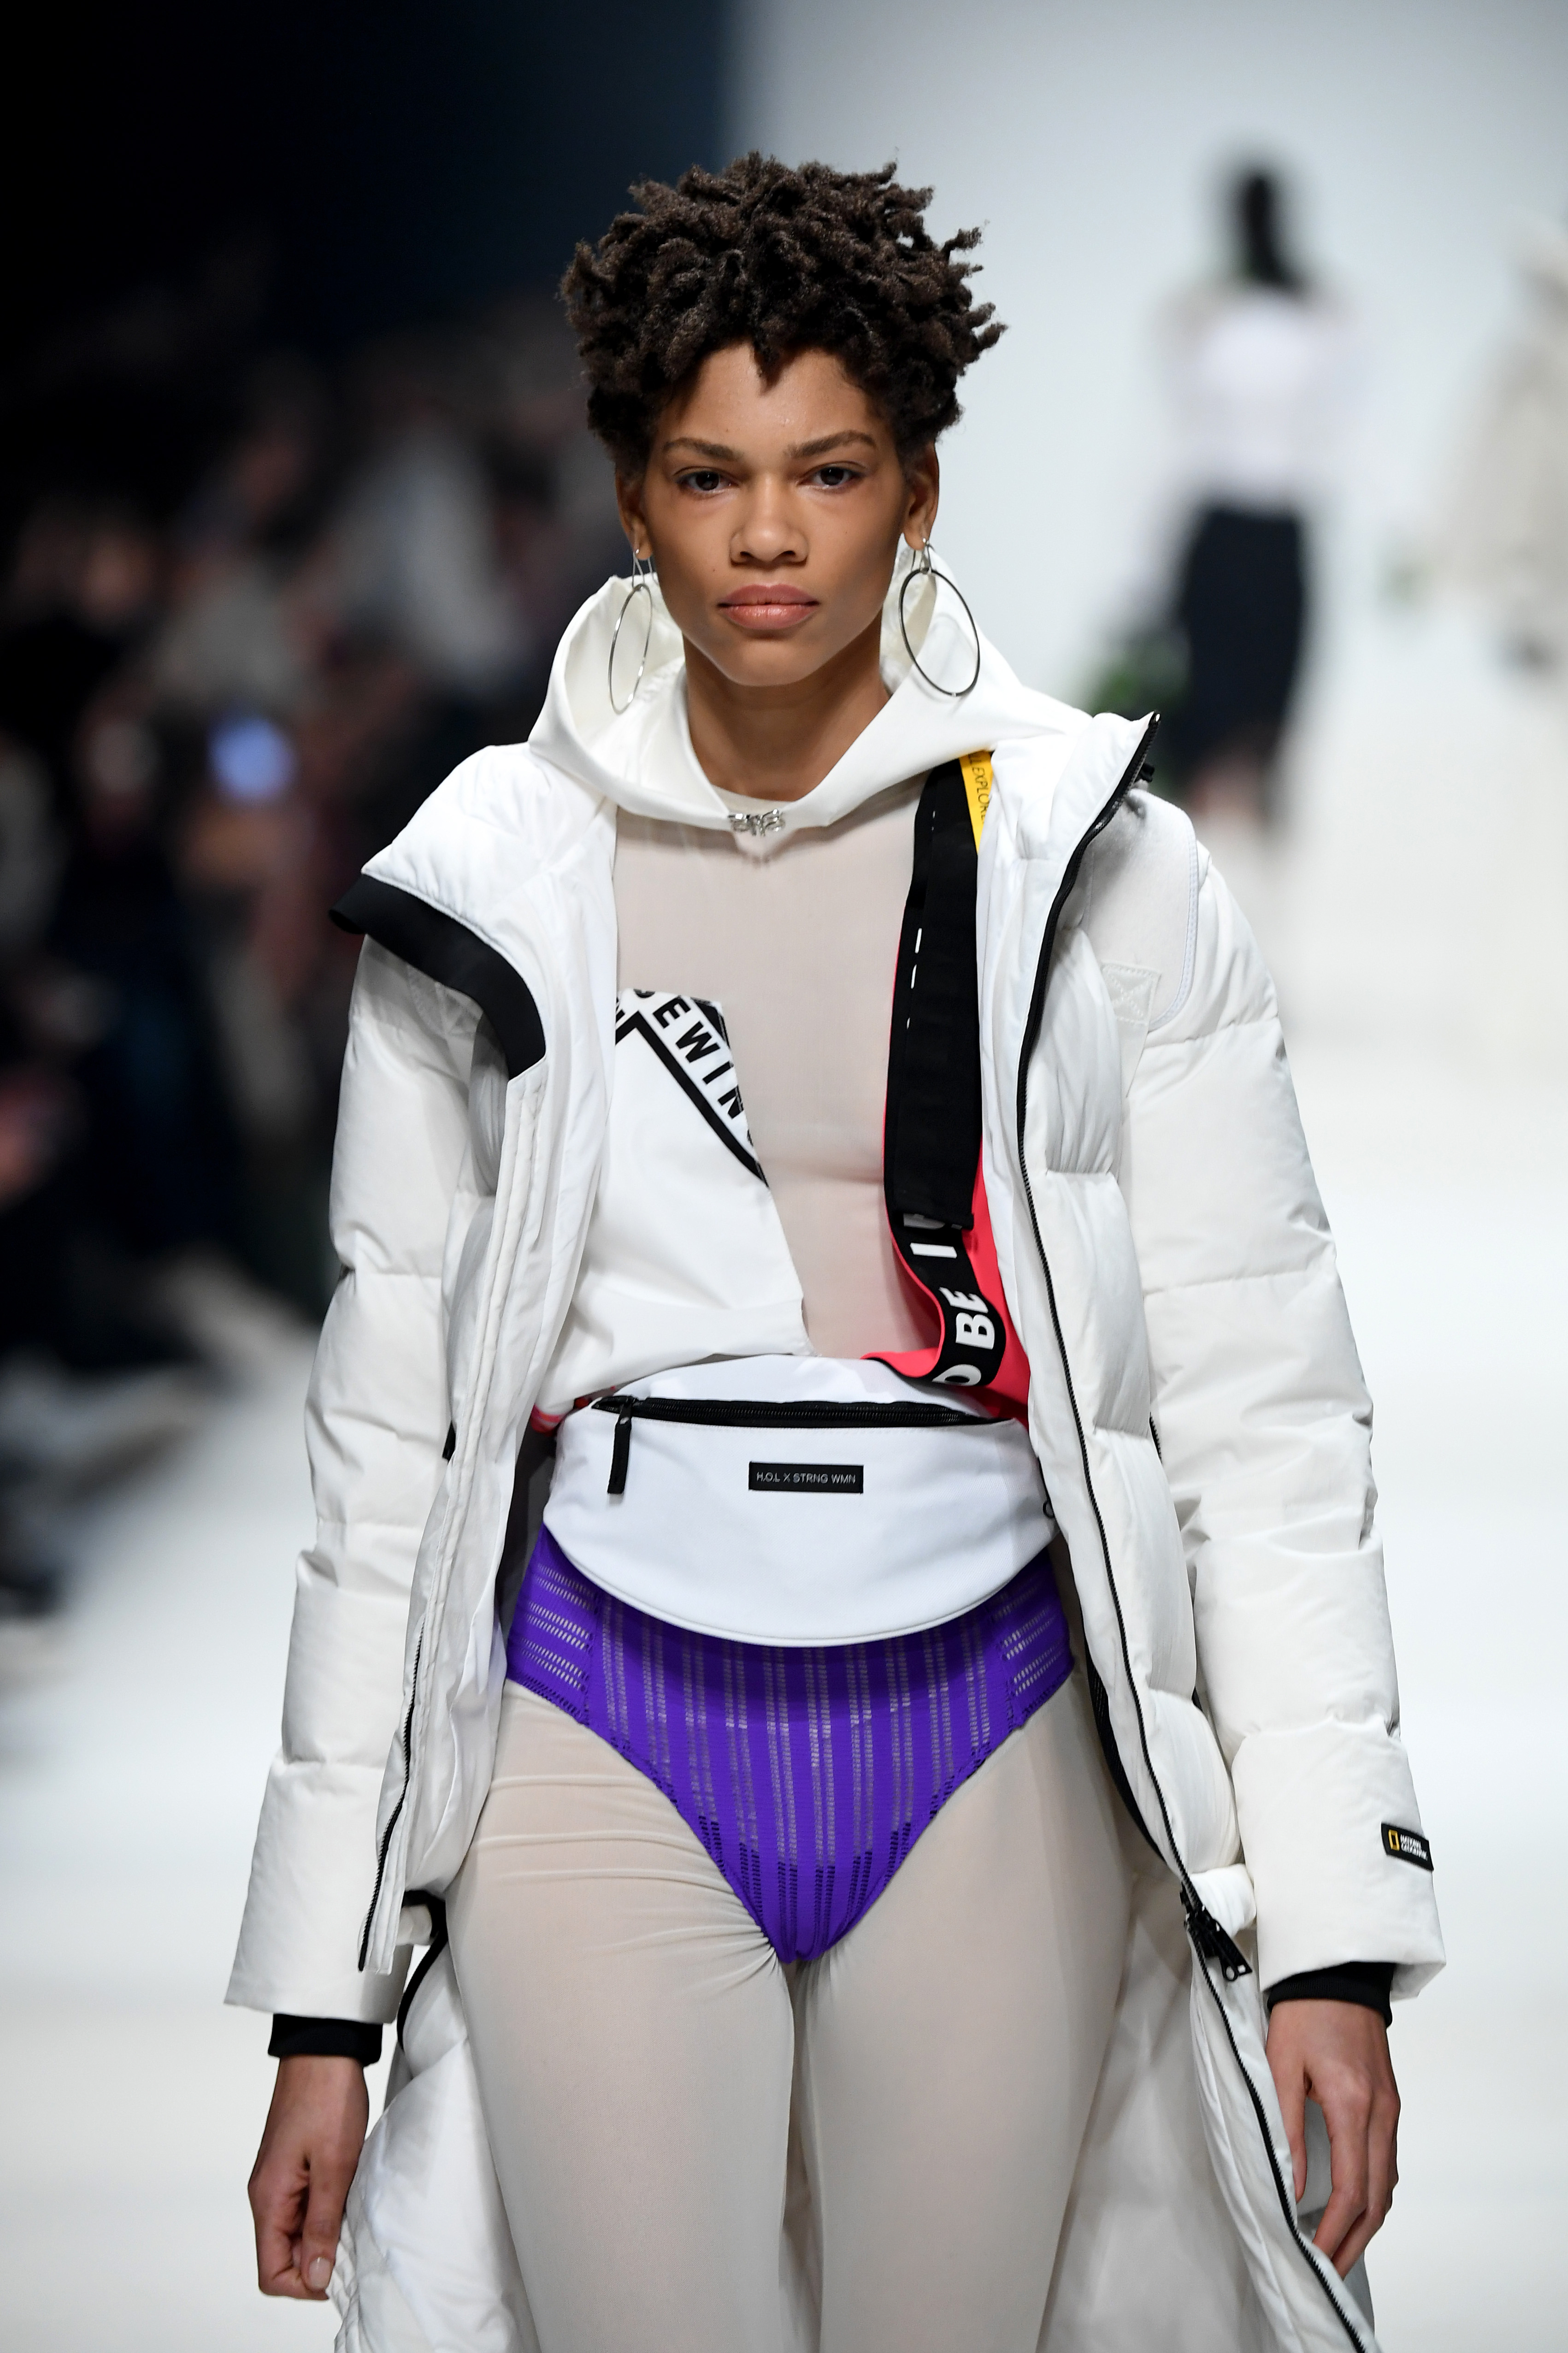 BERLIN, GERMANY - JANUARY 14: A model wearing a coat by National Geographic, jumpsuit by Gaya, lingerie by Opaak, earring & ring by Lani Lees, ring by Folkdays and a bag by Hi On Life walks the runway at the Neonyt show during Berlin Fashion Week Autumn/Winter 2020 at Kraftwerk Mitte on January 14, 2020 in Berlin, Germany. (Photo by John Phillips/Getty Images for MBFW)